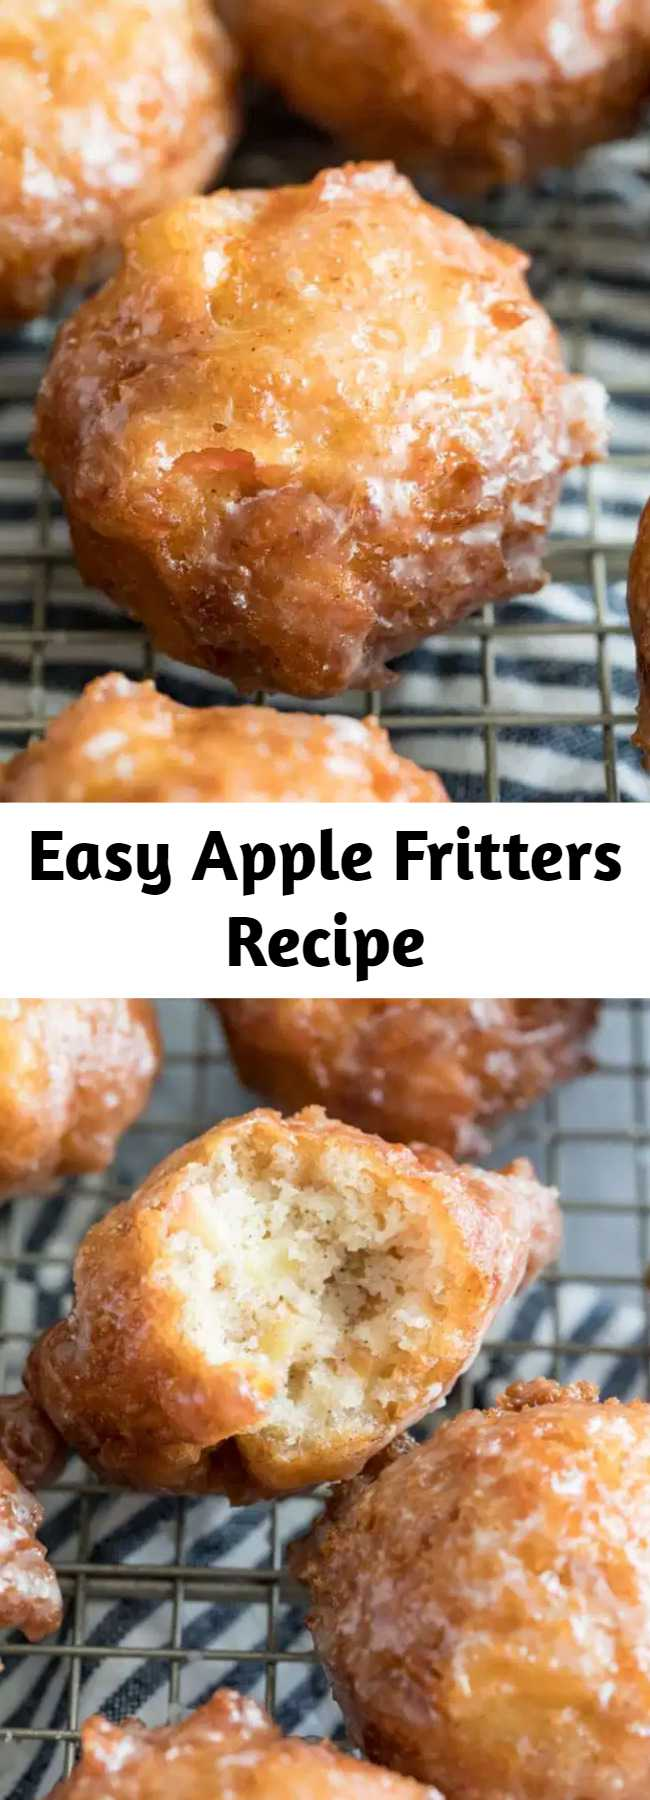 Easy Apple Fritters Recipe - Apple fritters are somewhat sweet, tender, and fluffy, and are absolutely packed with flavor. Dip them in a 3 ingredient apple cider glaze or roll them in cinnamon/sugar and enjoy! Have you ever made fried apple fritters before? Don't be intimidated because this recipe is so simple to make at home, it require absolutely no yeast or rising!